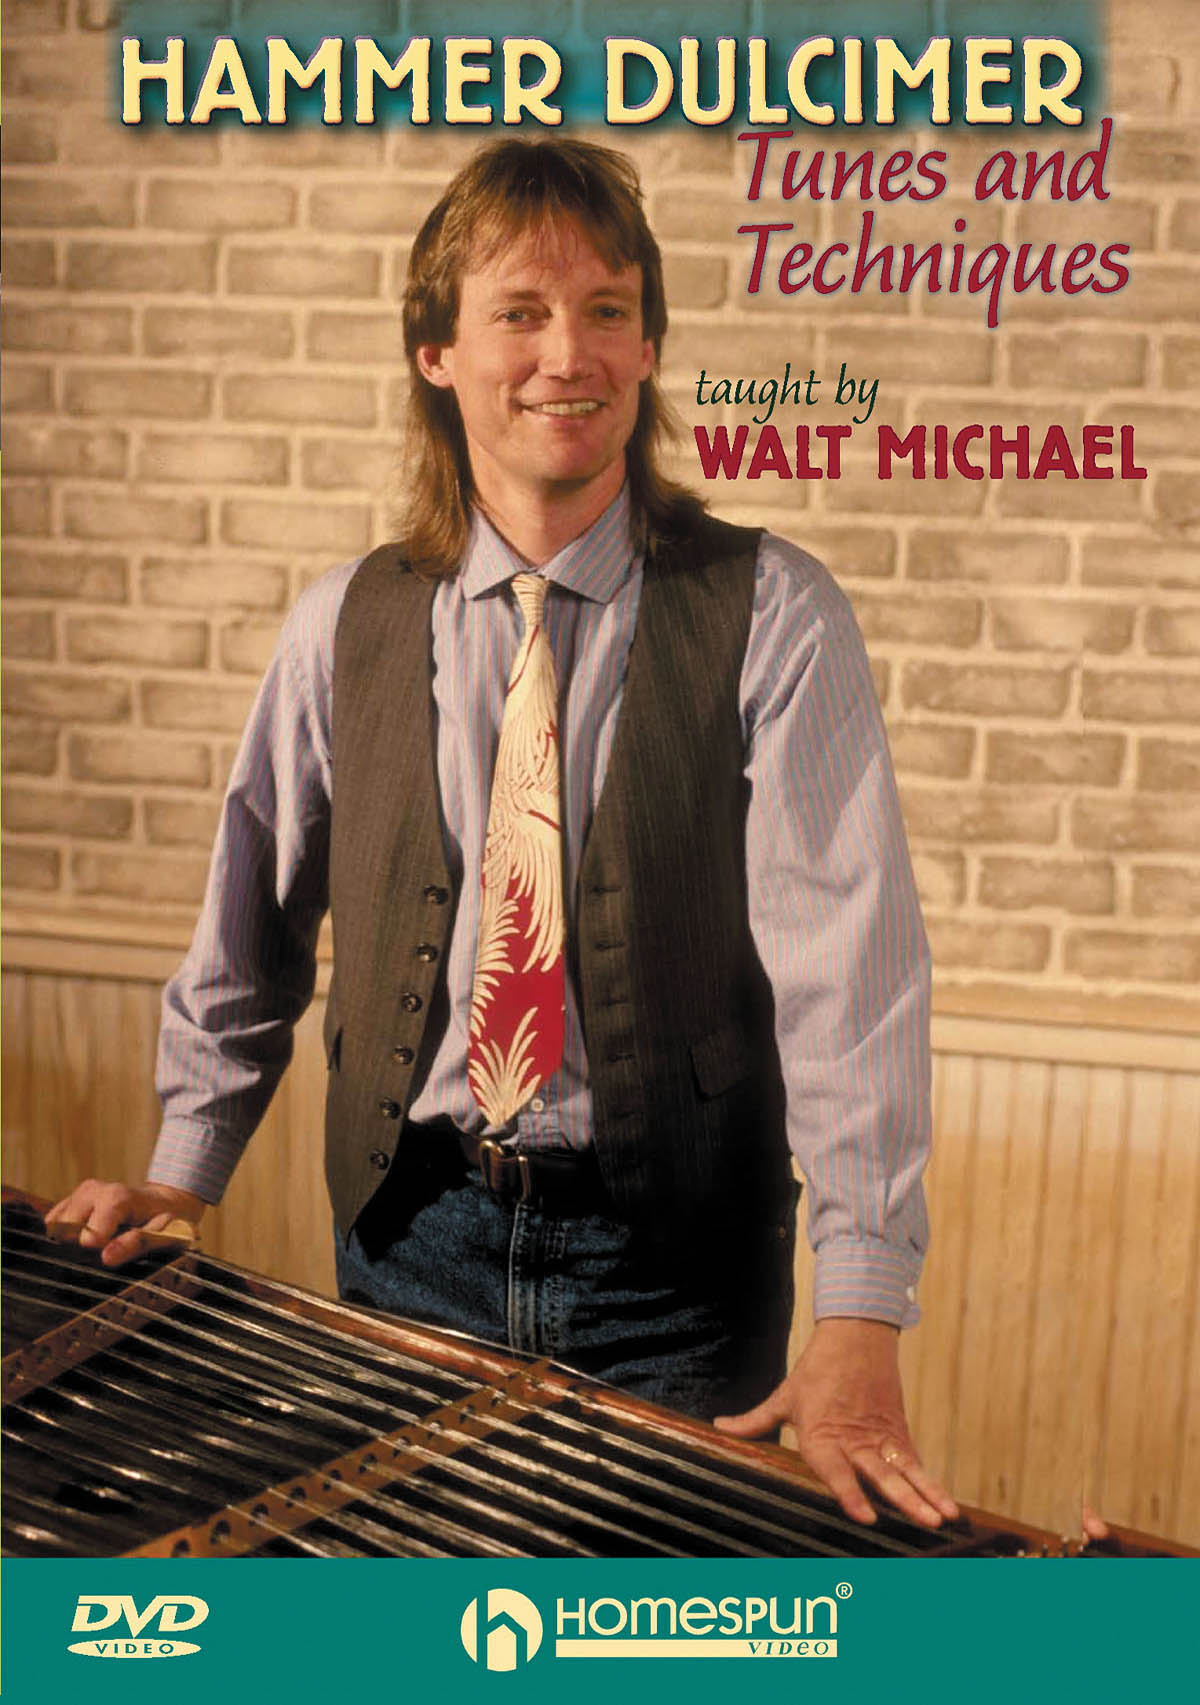 Walt Michael: Hammer Dulcimer Tunes & Techniques: Other plucked strings: